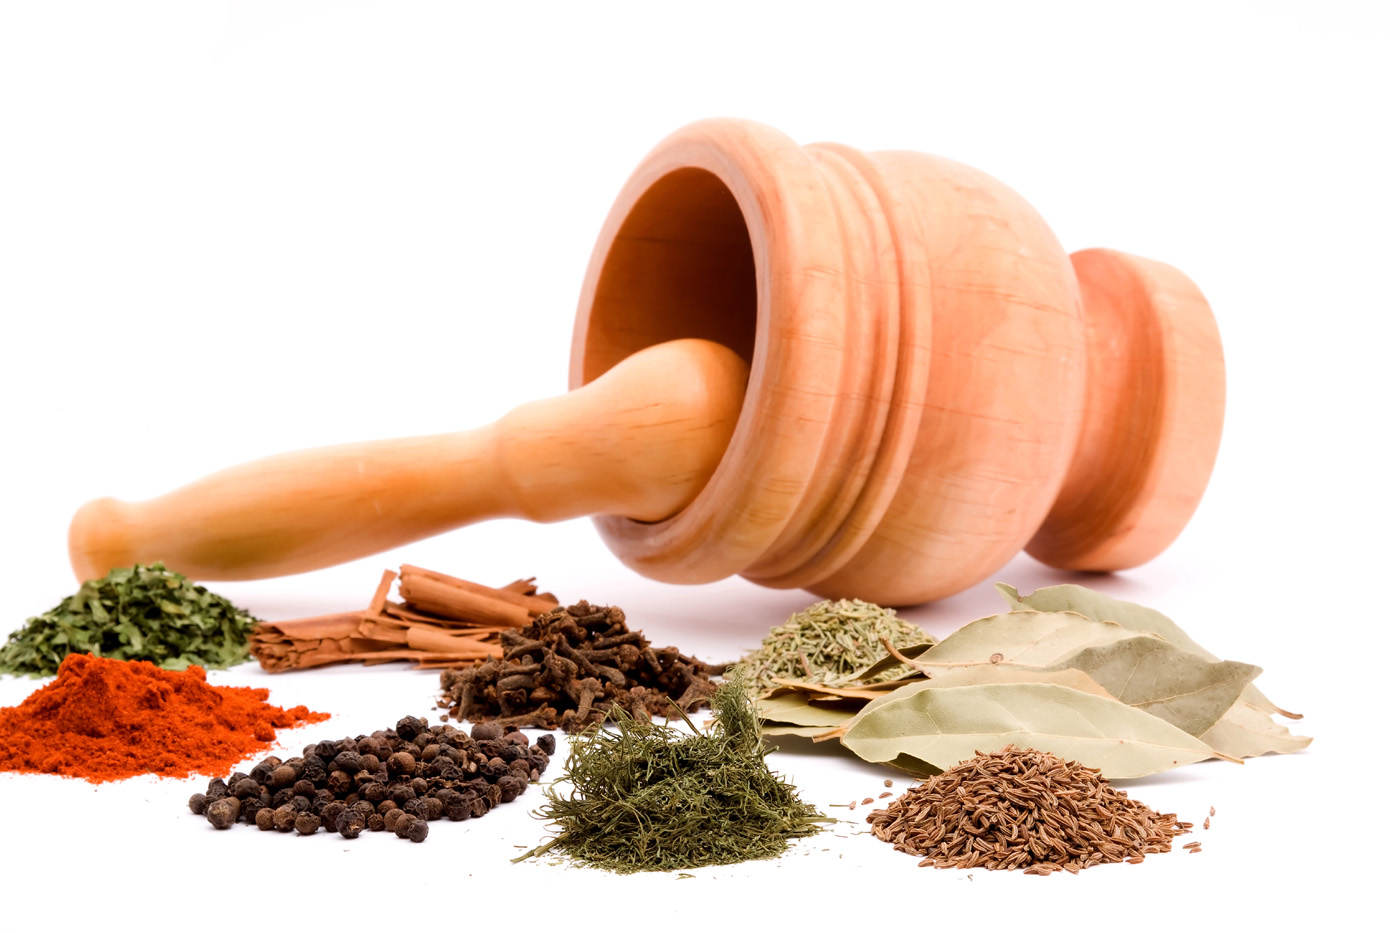 Pictures of various spices 6491